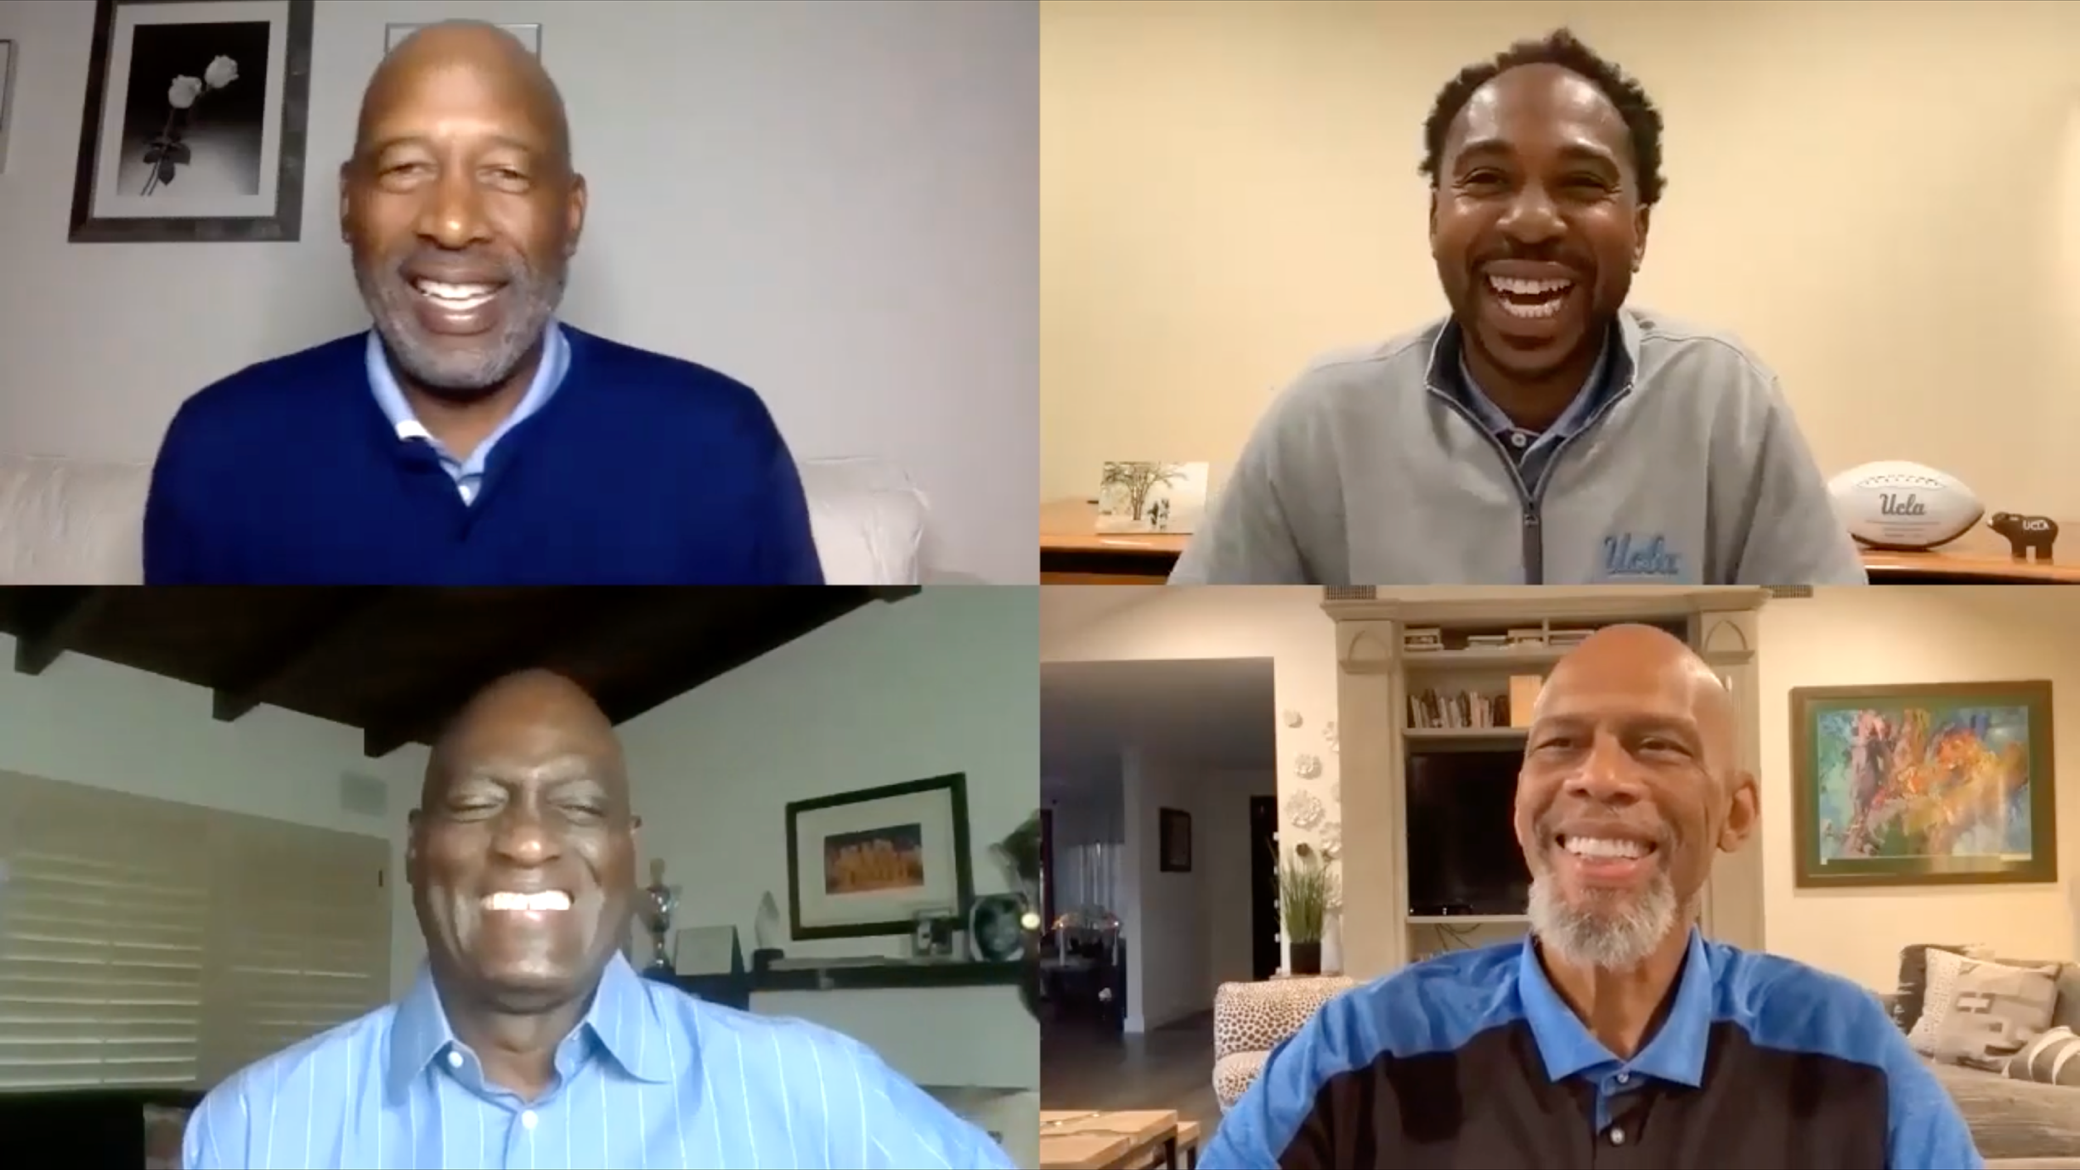 Lakers legends Kareem Abdul-Jabbar, Michael Cooper and James Worthy talk sports, activism and health